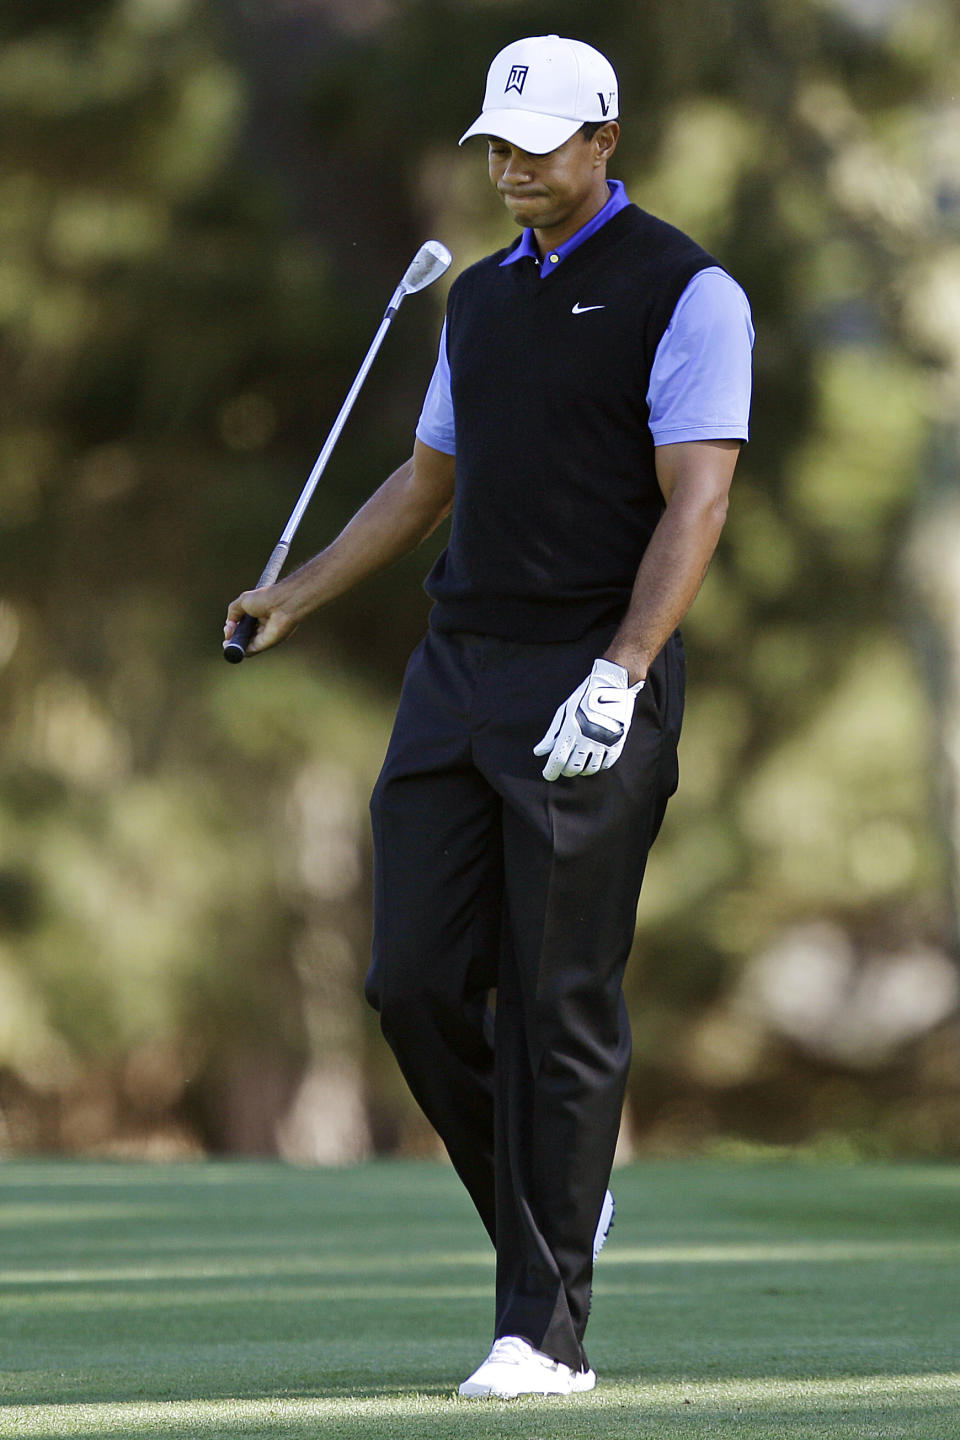 Tiger Woods reacts after hitting from the 18th fairway at Spyglass Hill Golf Course during the first round of the Pebble Beach National Pro-Am golf tournament in Pebble Beach, Calif., Thursday, Feb. 9, 2012. (AP Photo/Marcio Jose Sanchez)